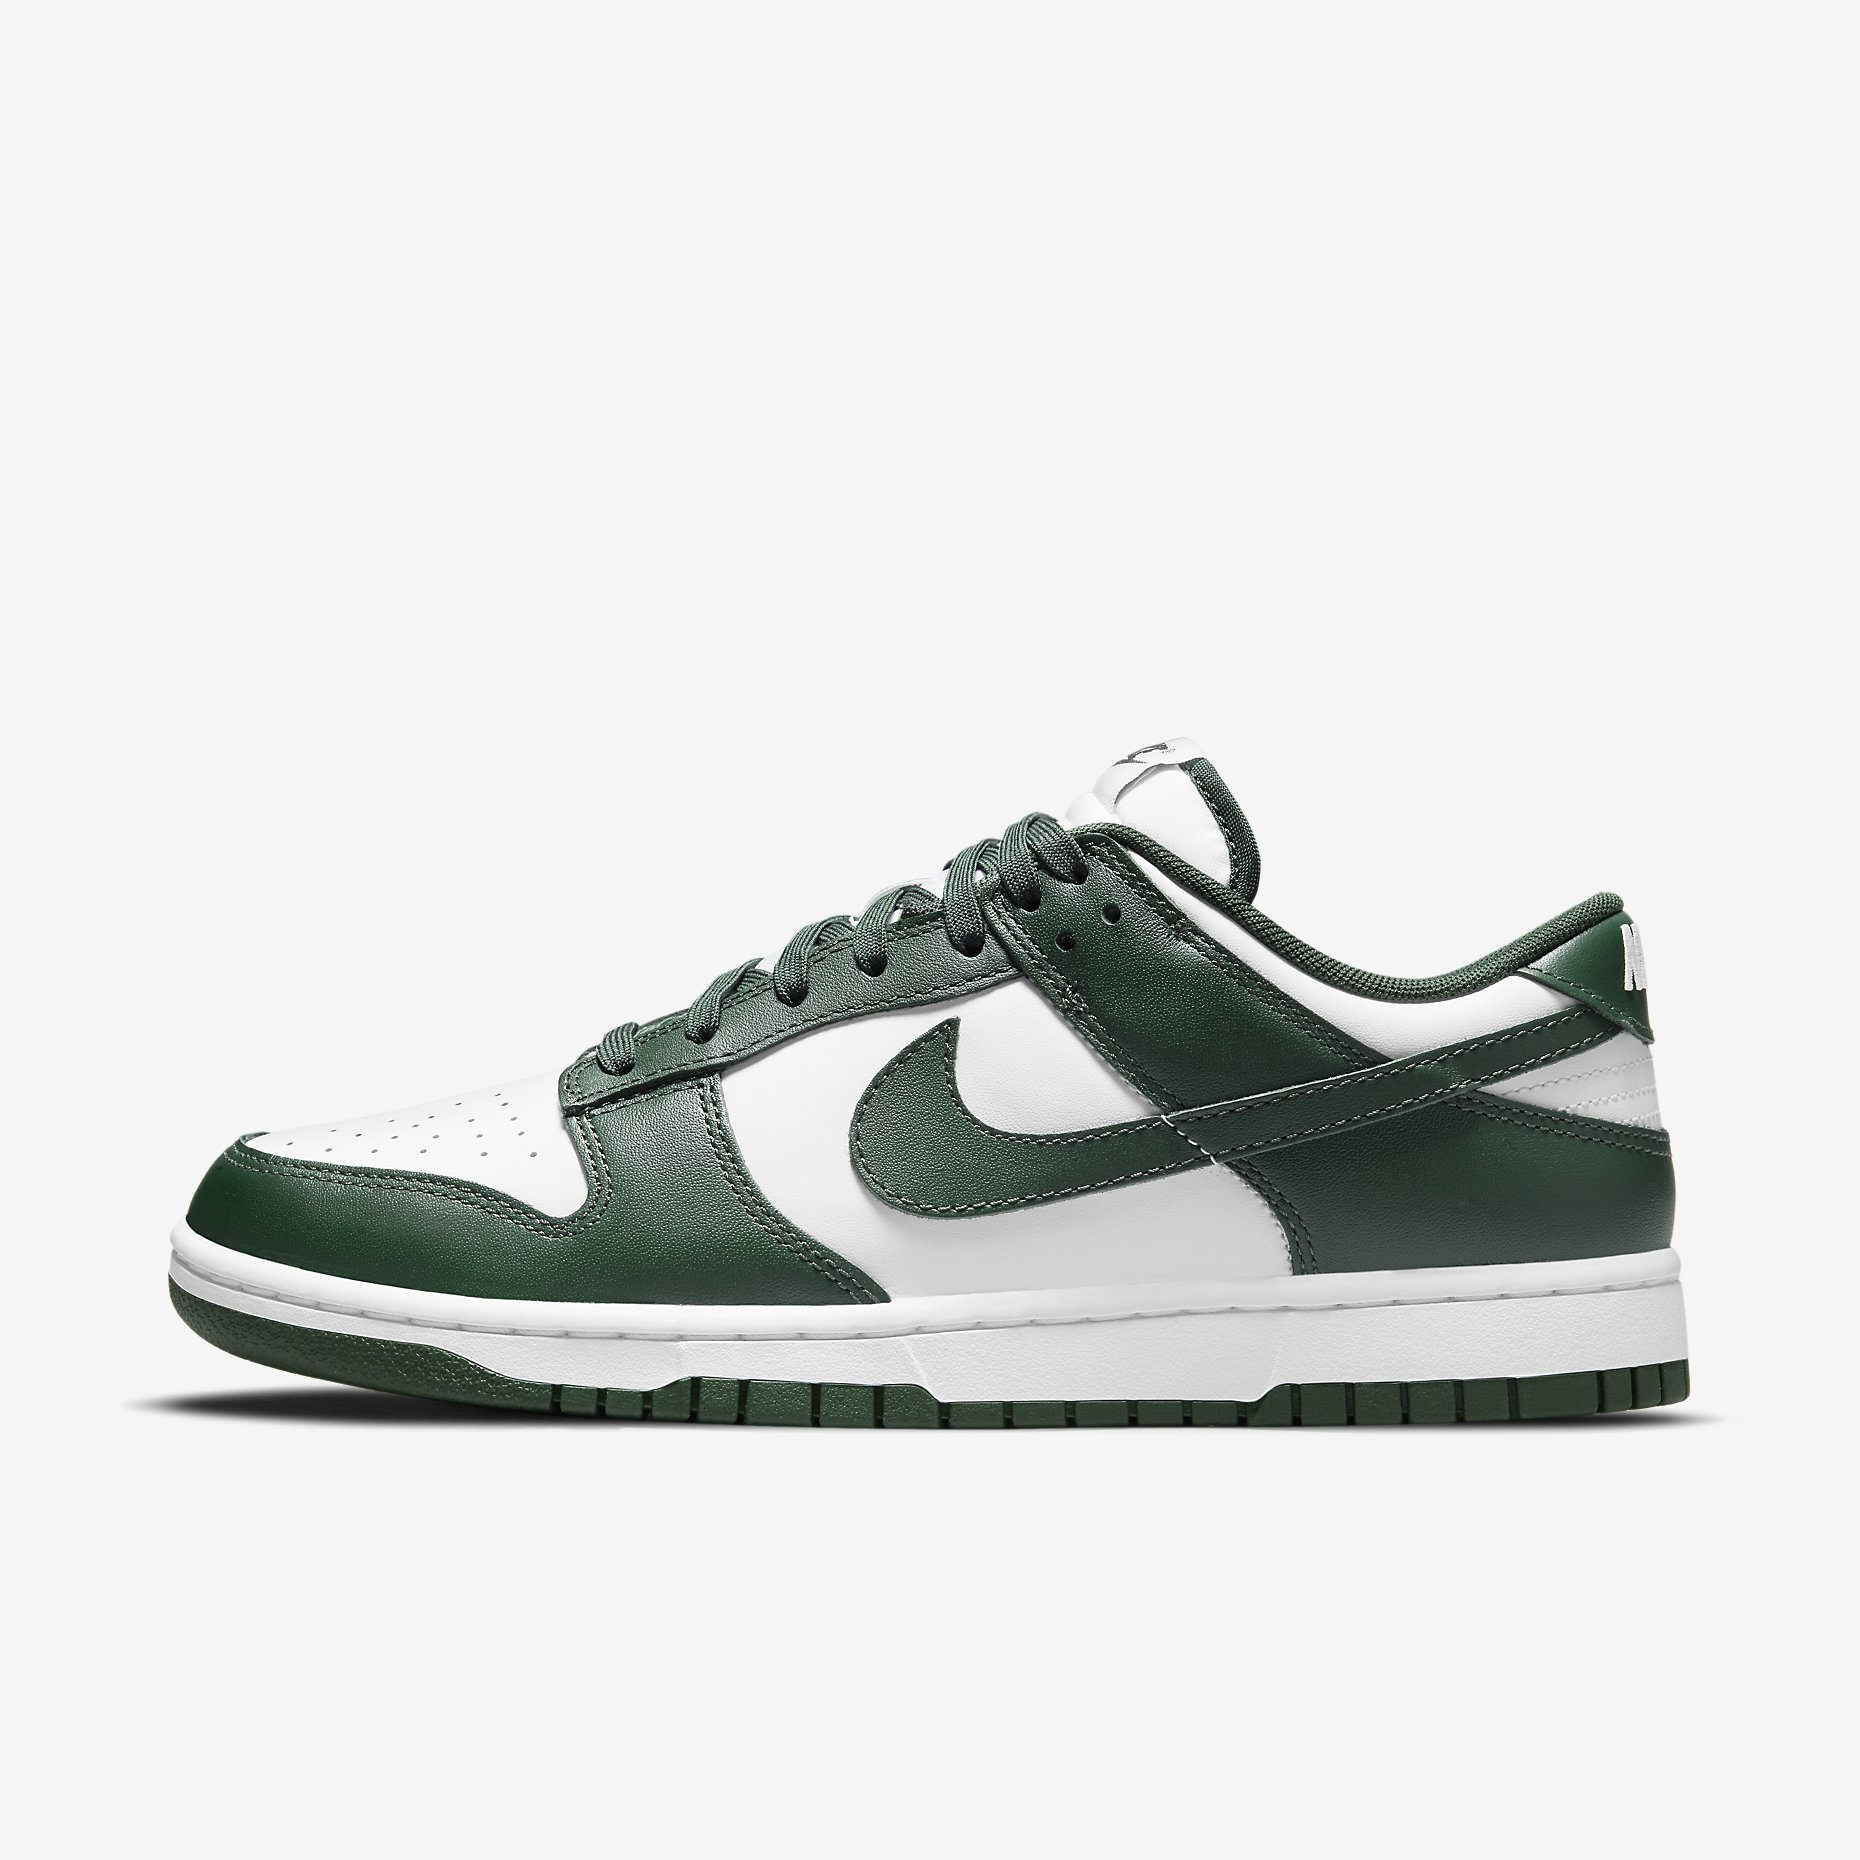 Nike Dunk Low 'White/Team Green'}